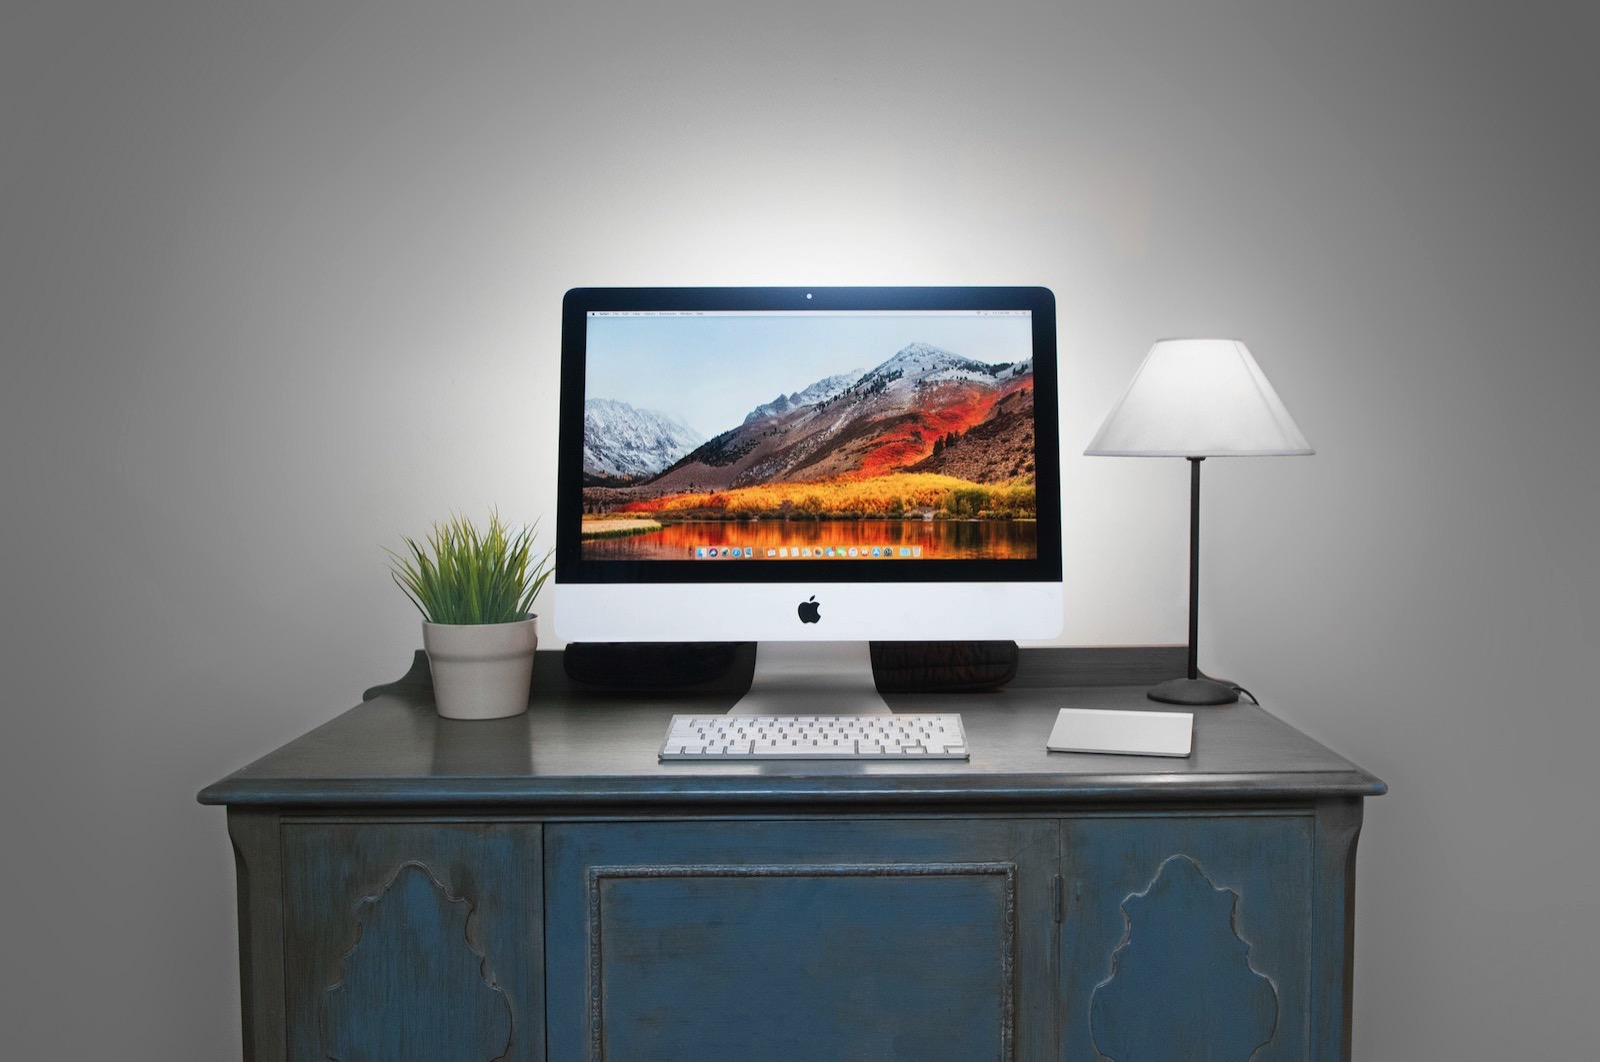 Spencer imbrock 463827 unsplash imac high sierra